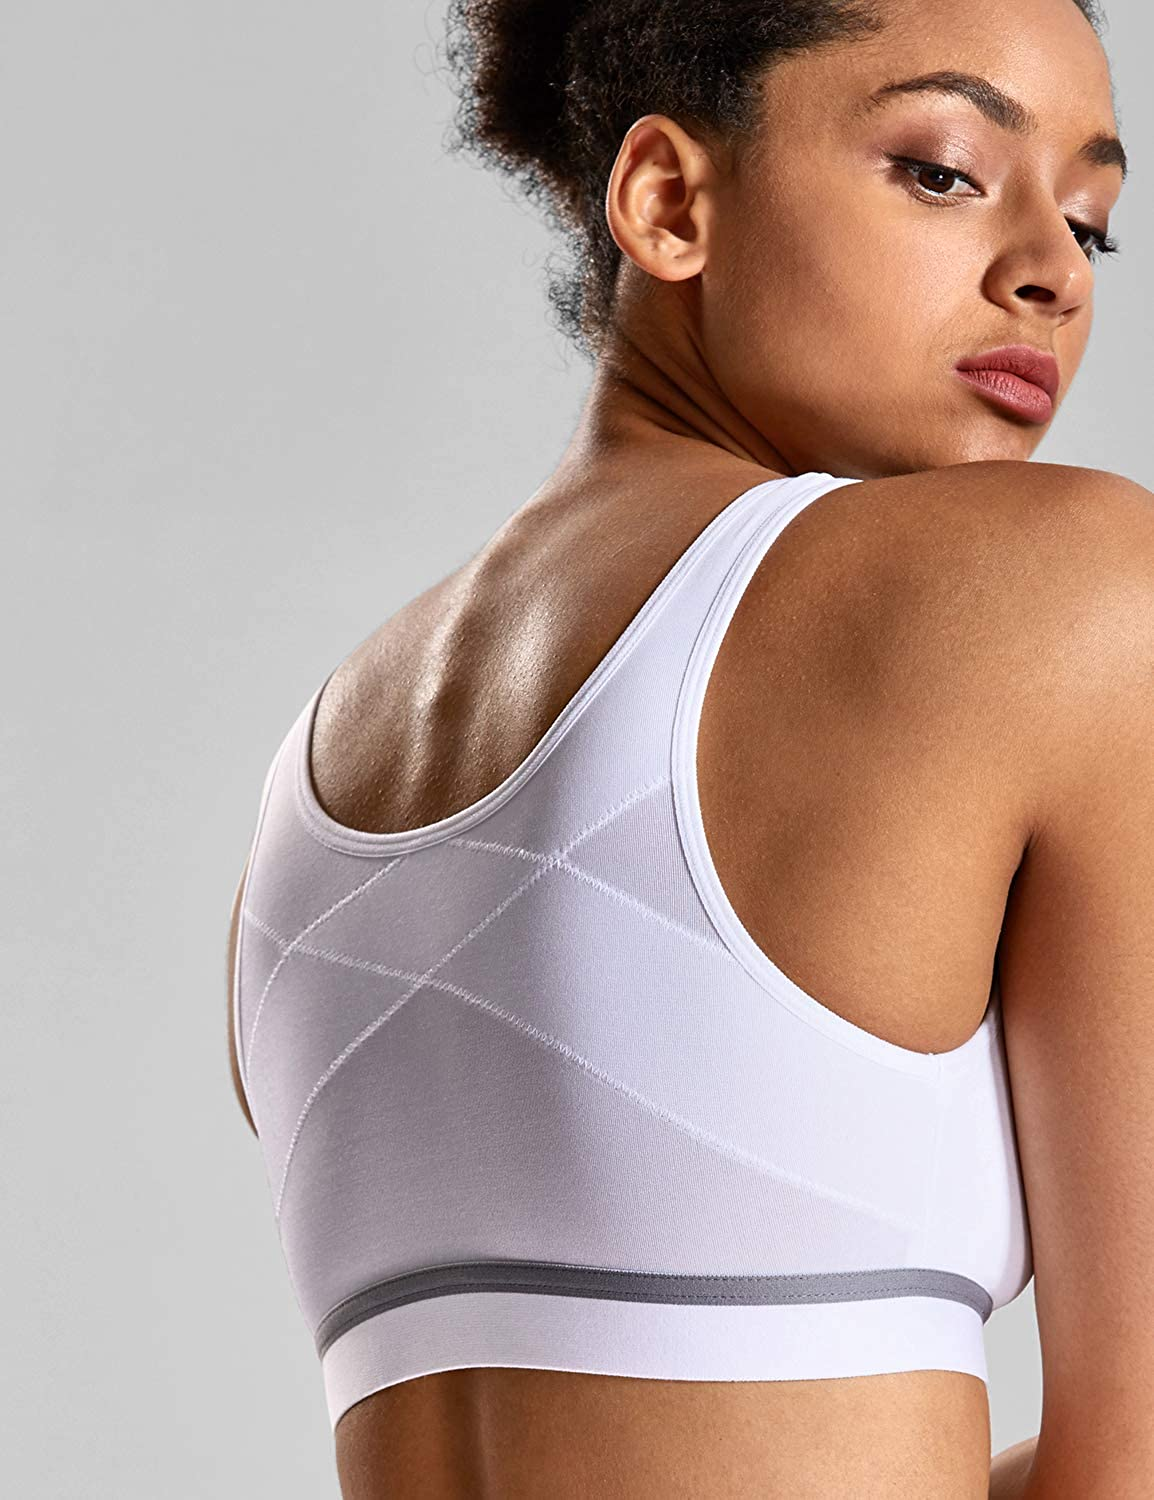 SYROKAN Womens High Impact Sports Bra Front Closure Cross Back Support Wirefree